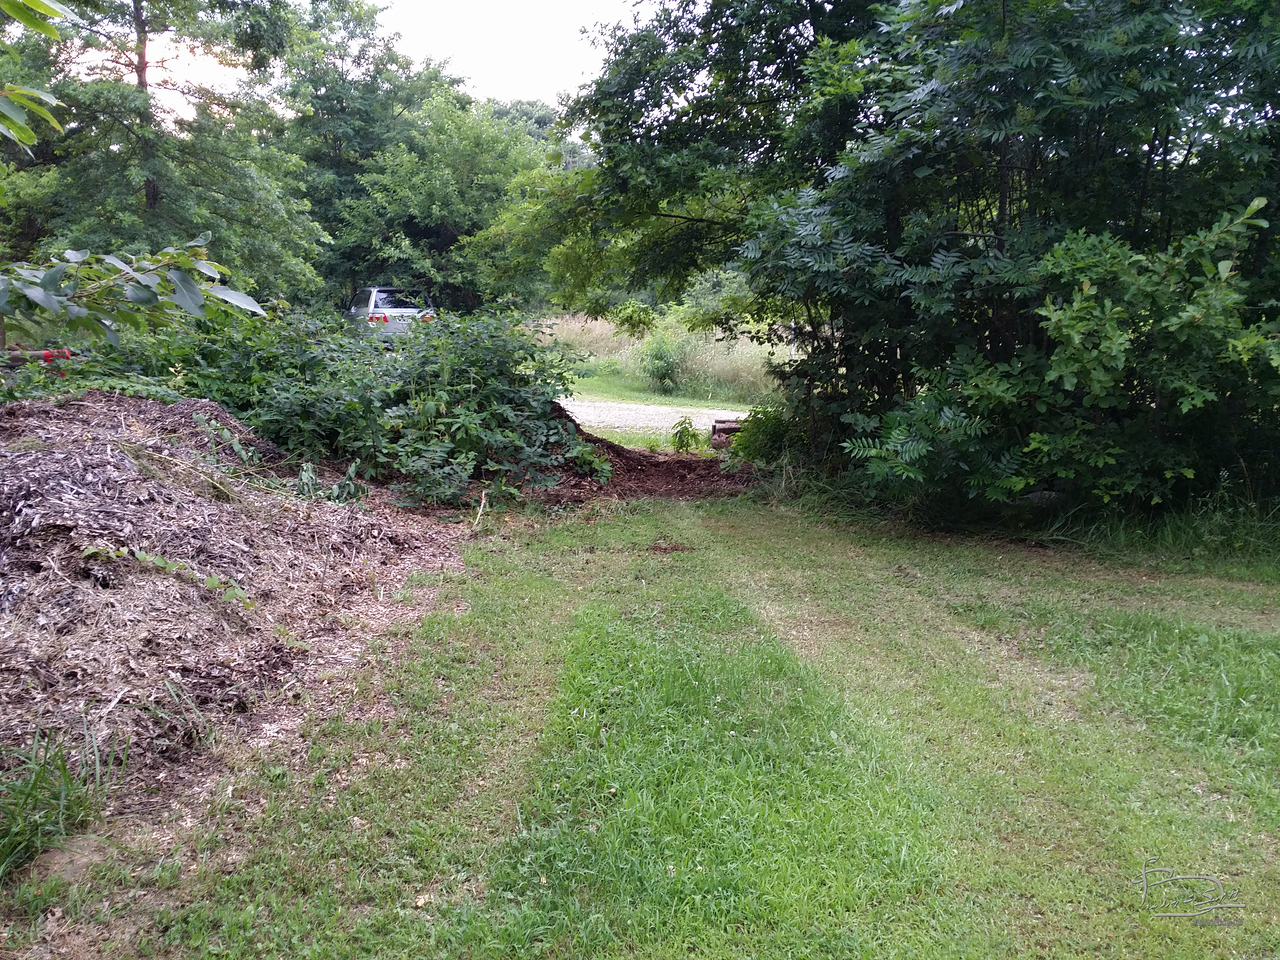 opened up path through the wood chip pile.